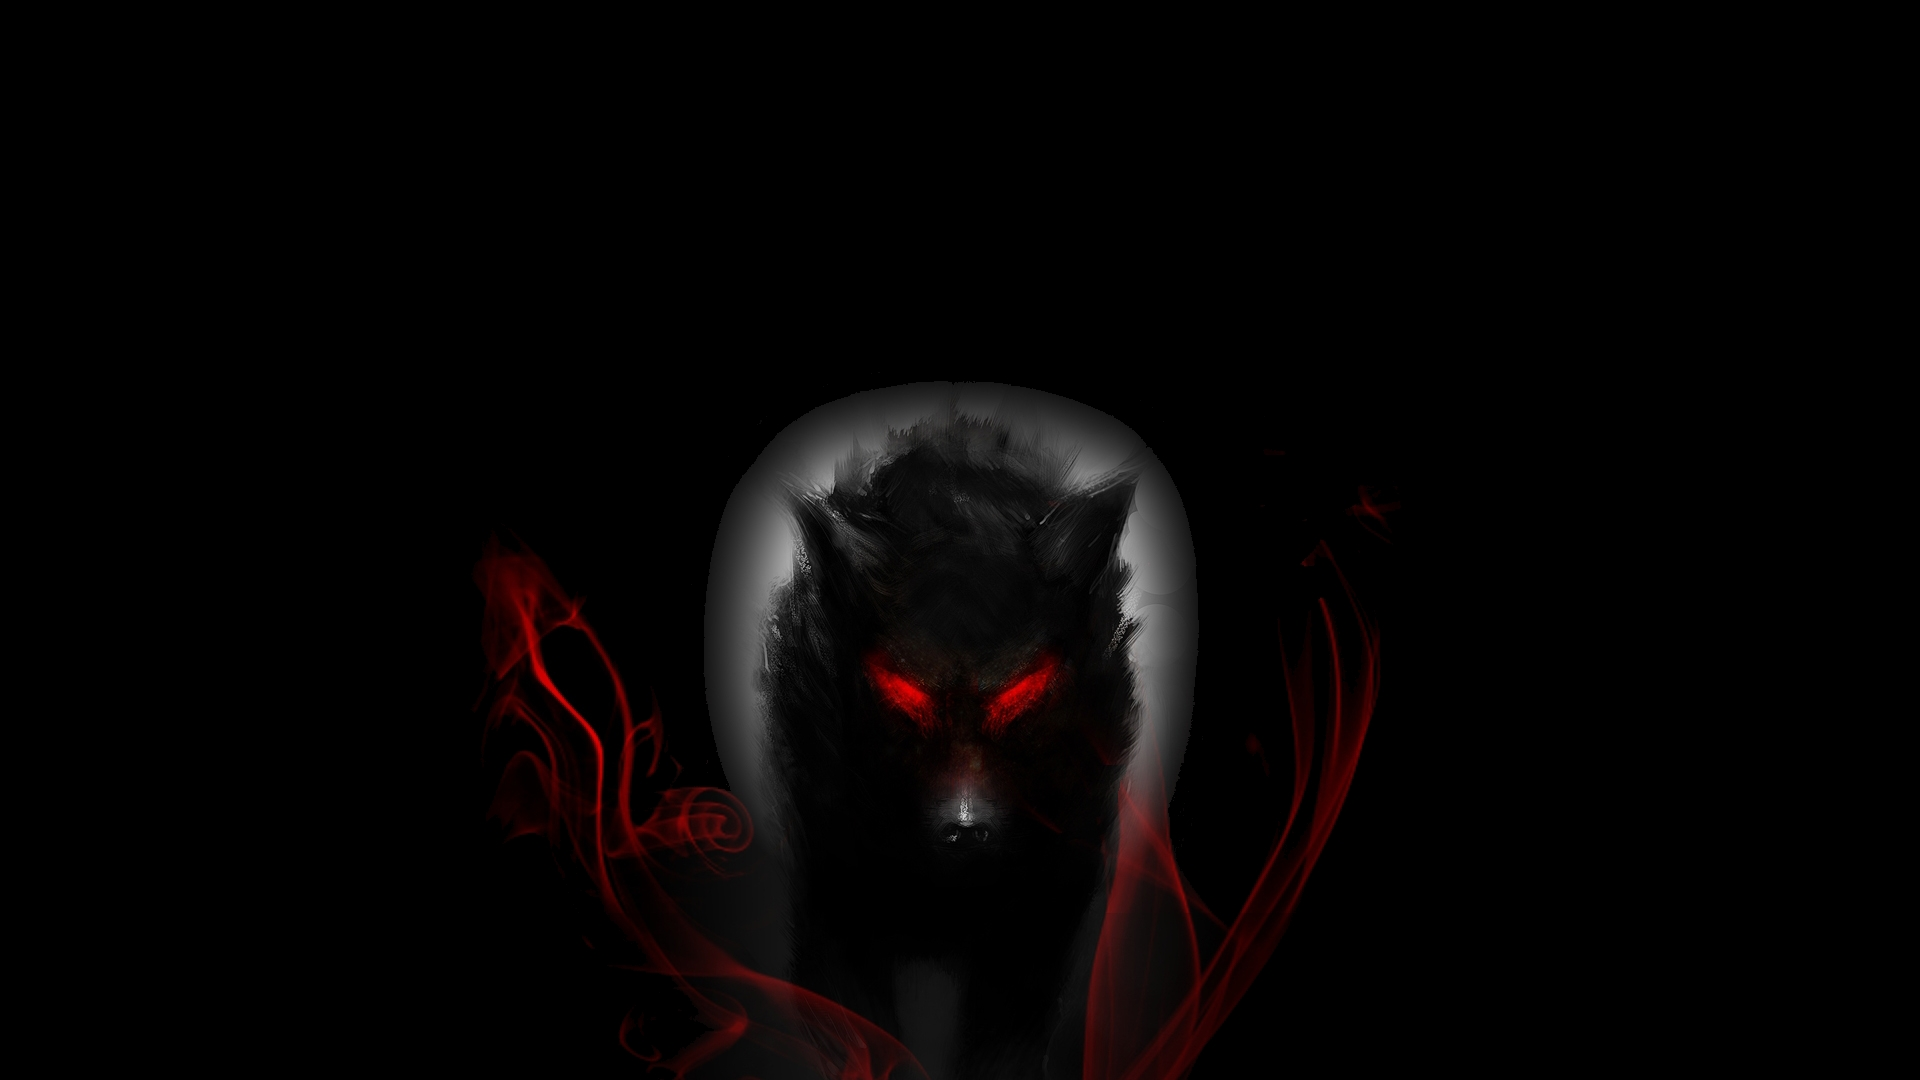 Hd wallpaper wolf - Wolf With Red Eyes Hd Wallpaper